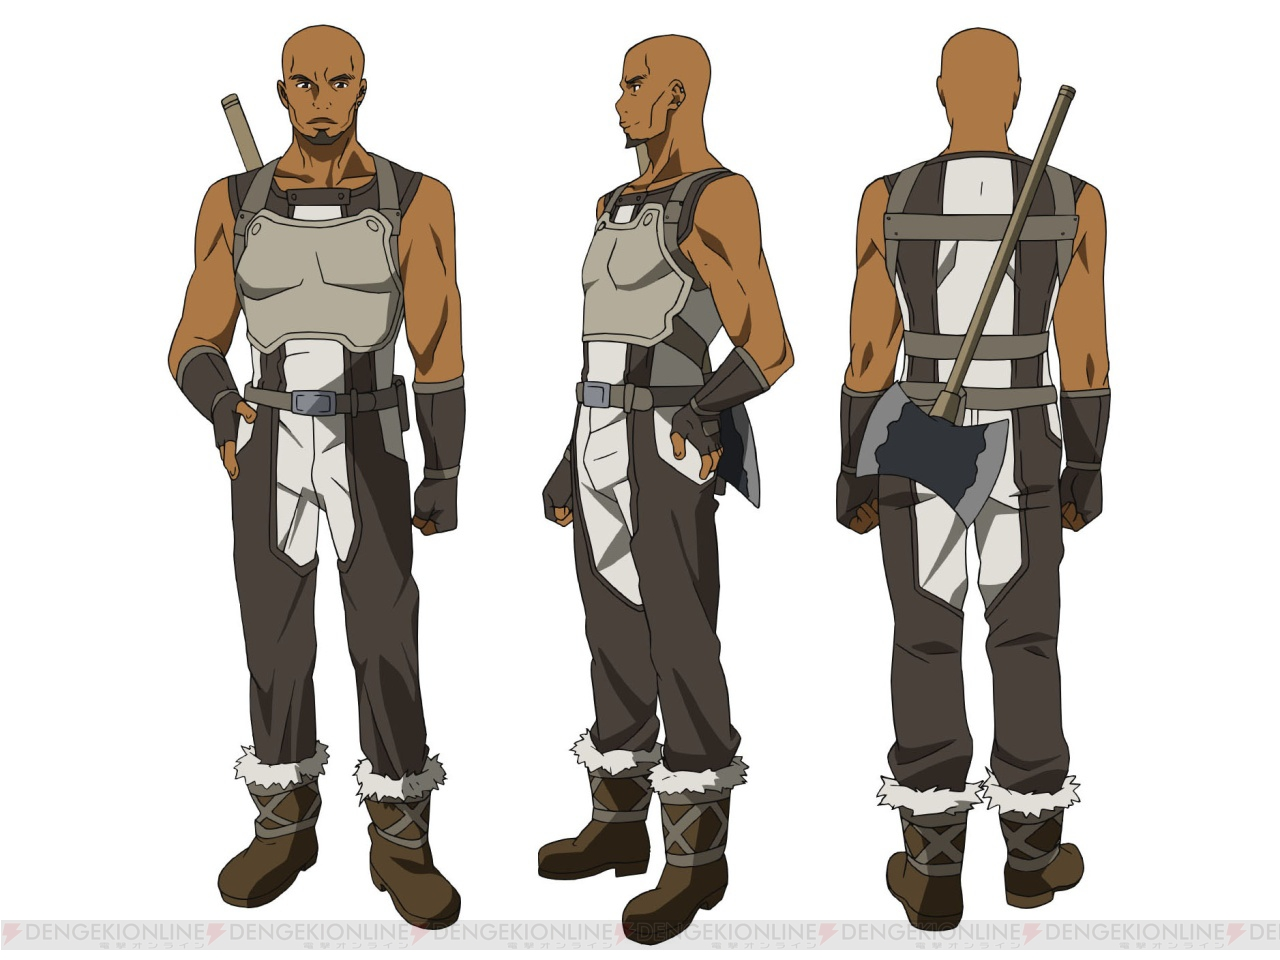 Agil, from Sword Art Online: Aincrad Arc, a roleplay on RPG